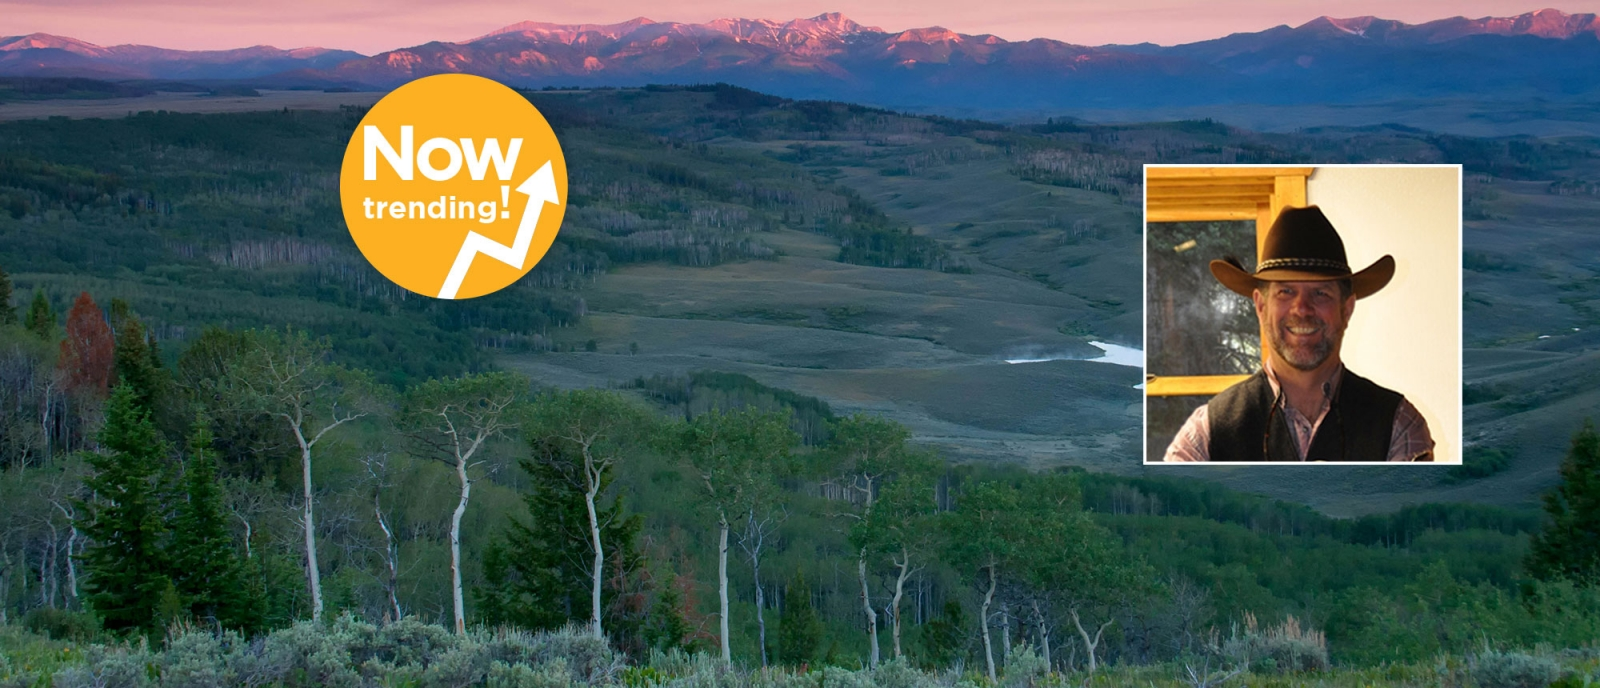 2,494 Acres Added To Black Canyon Of The Gunnison NP!